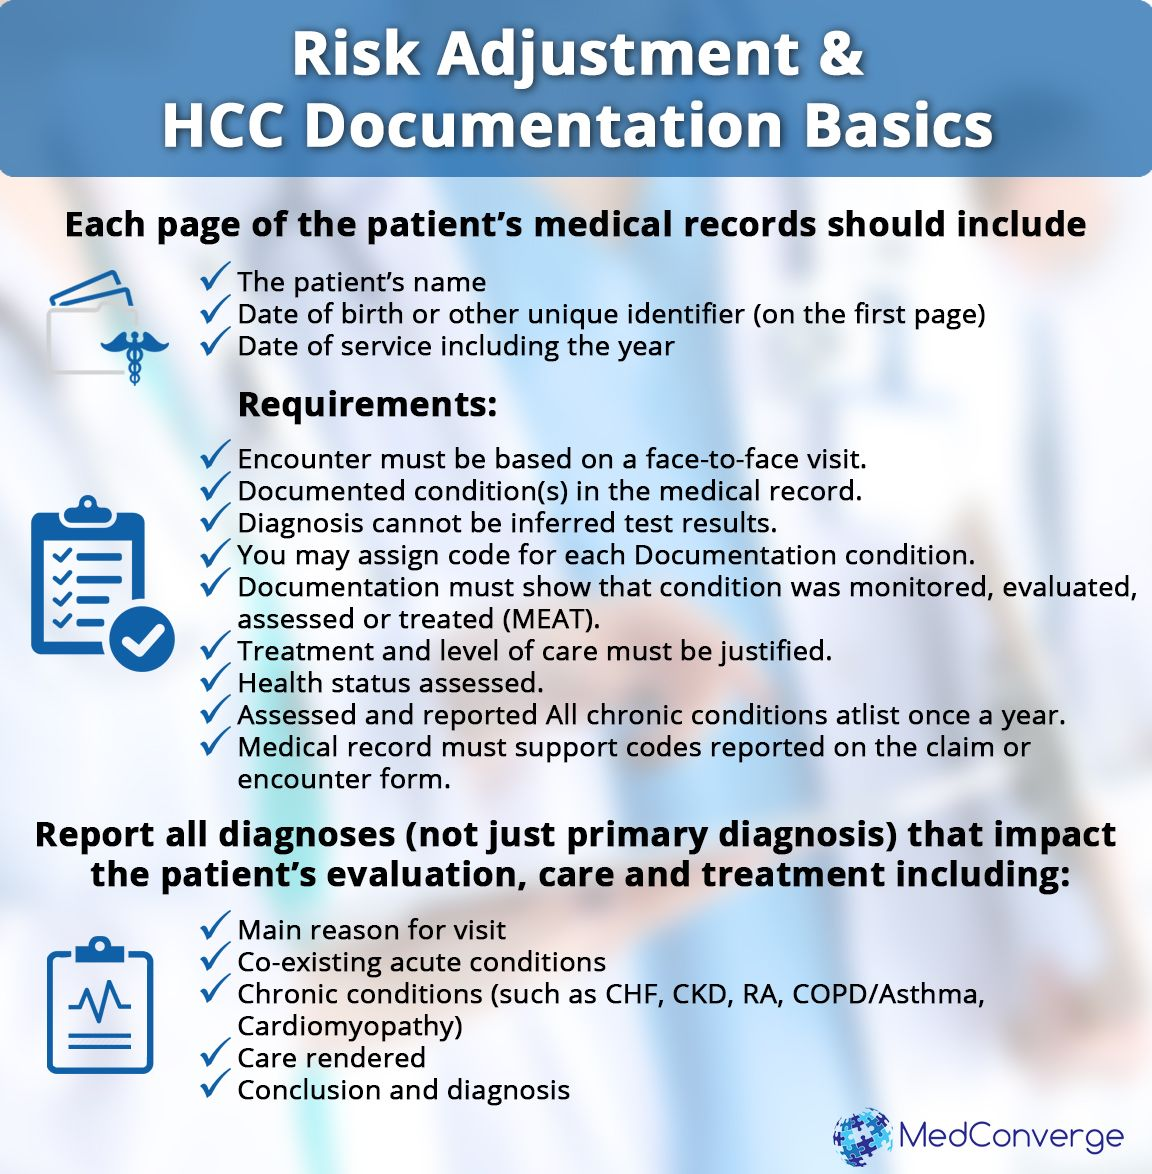 Risk Adjustment And Hcc Documentation Basics Riskadjustment Medicalcoding Hcc